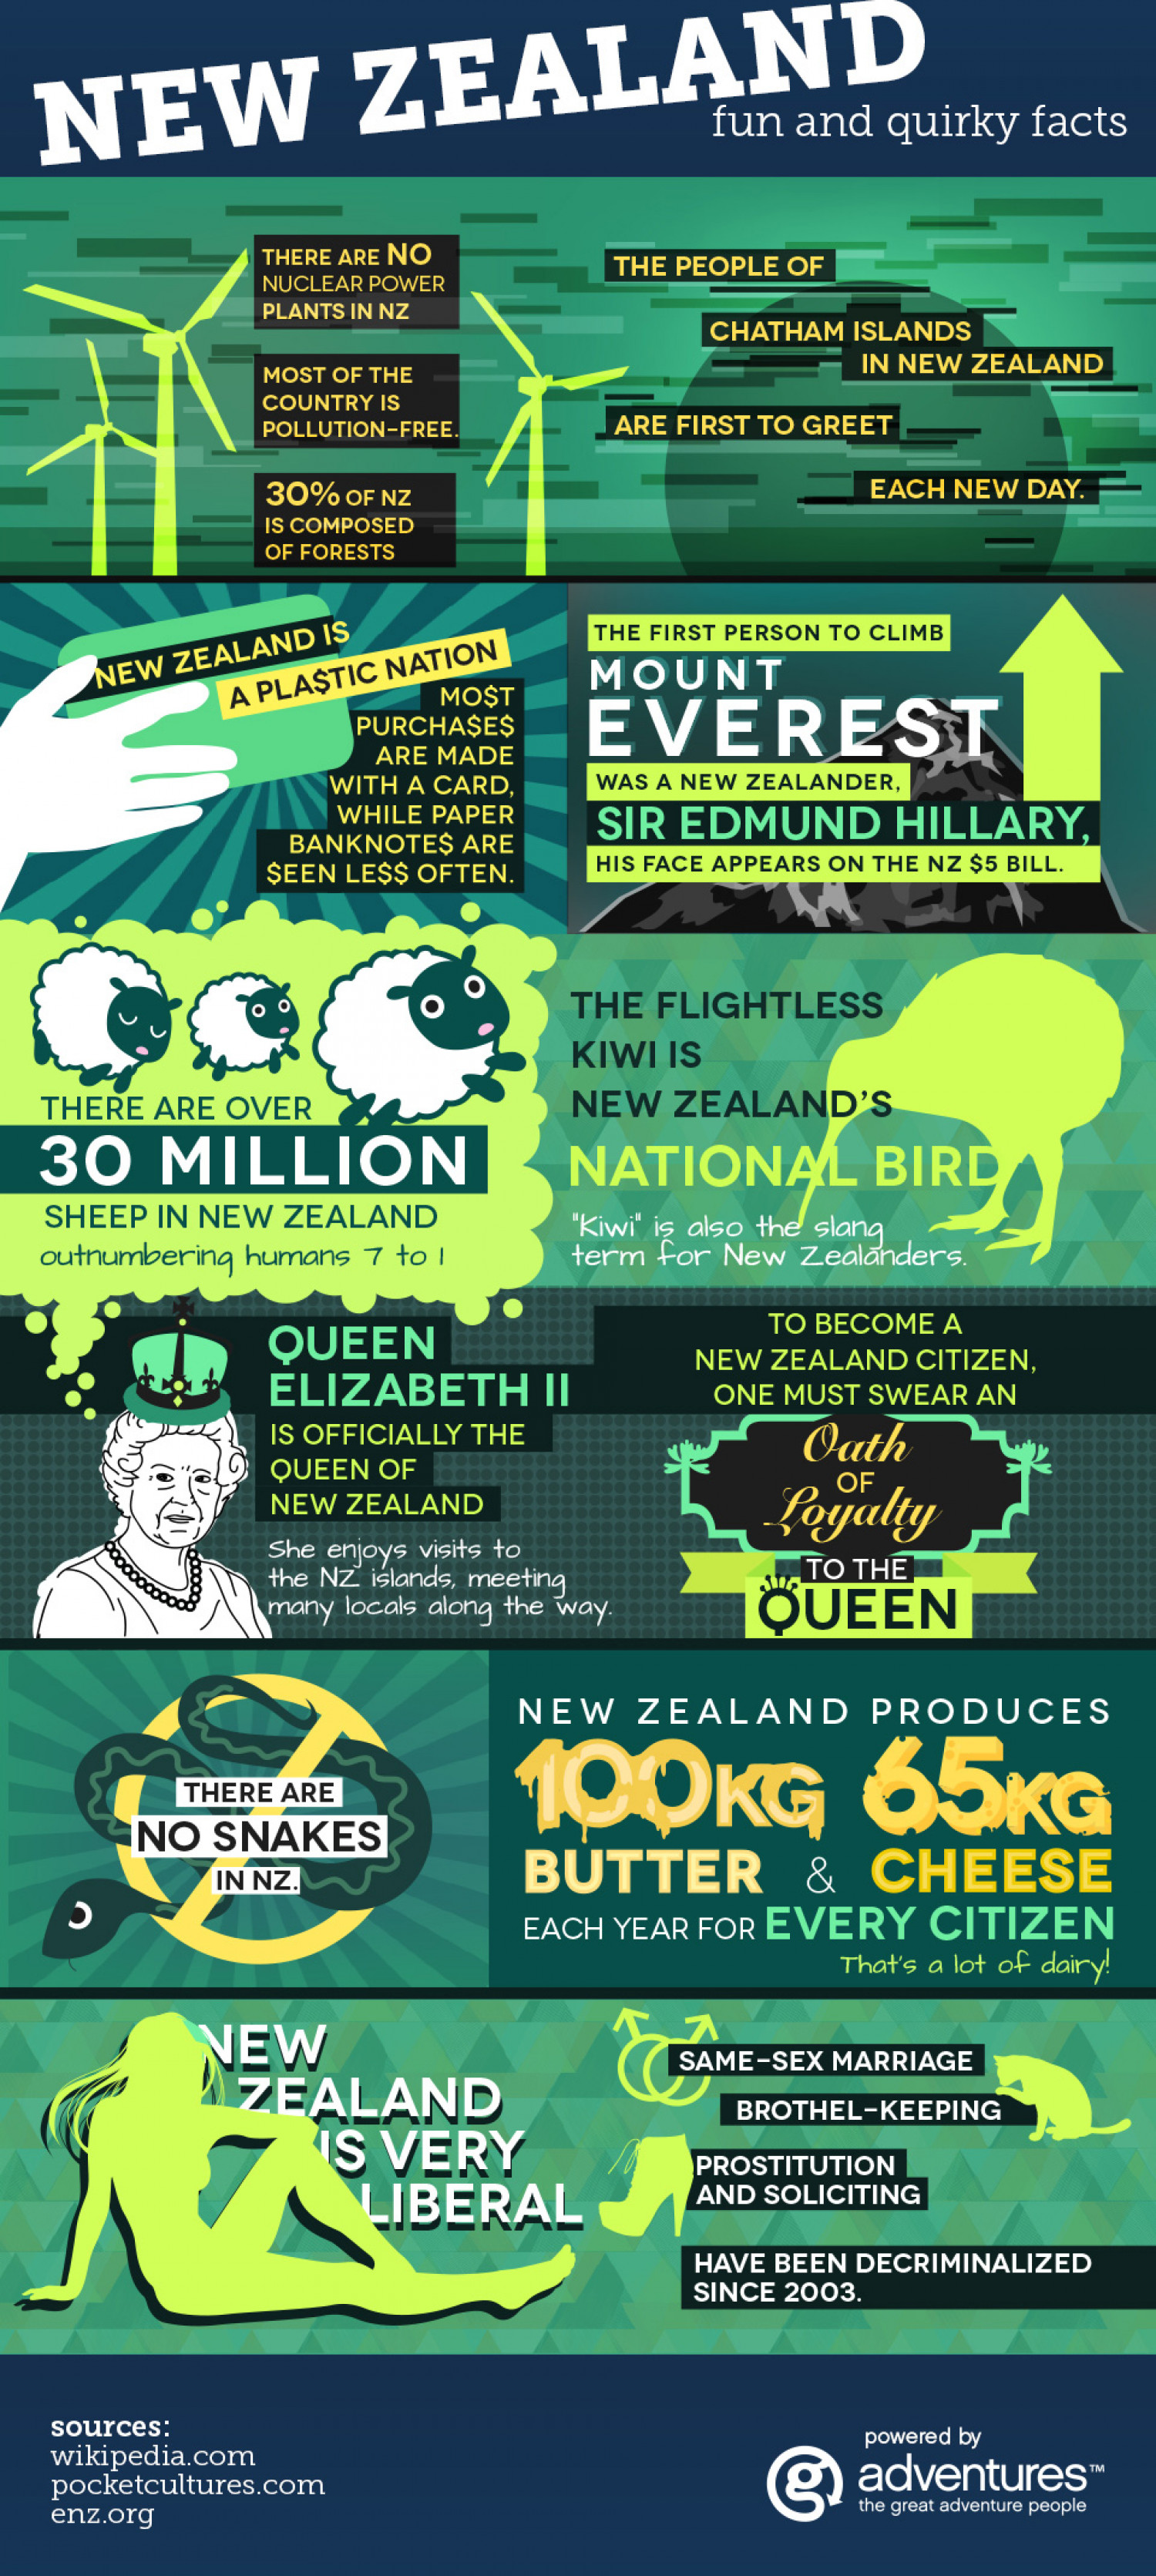 New Zealand Fun Facts Infographic